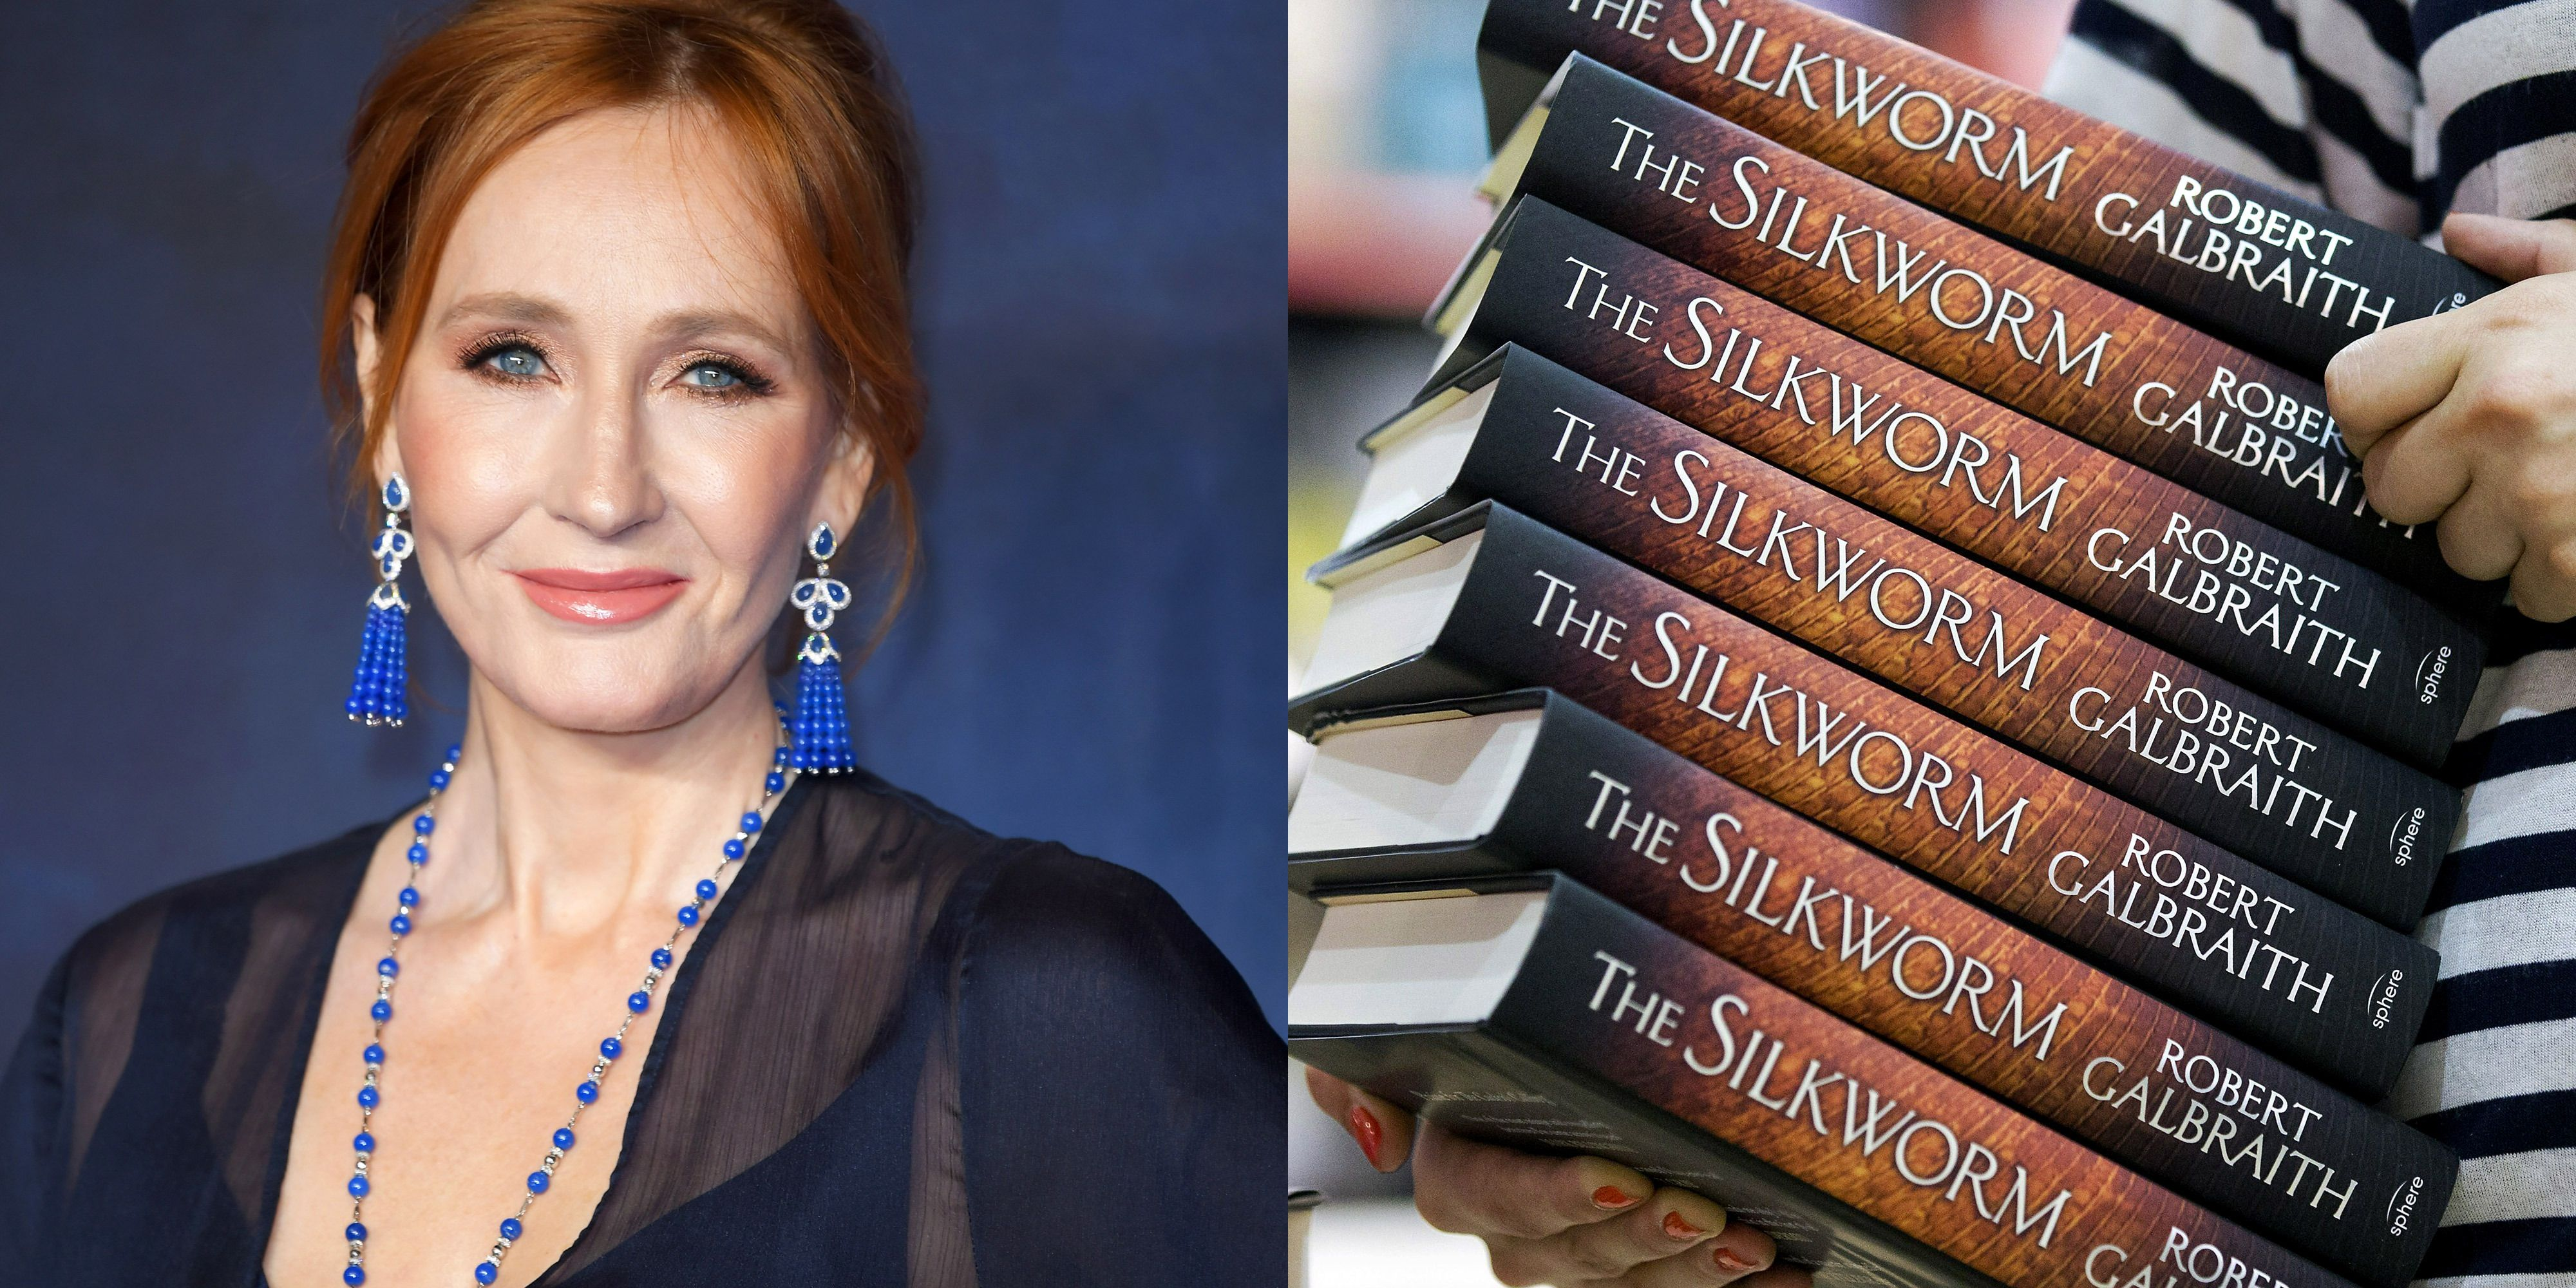 We Should Have Known About J.K. Rowling's Views, Thanks to Her Under-the-Radar Book Series